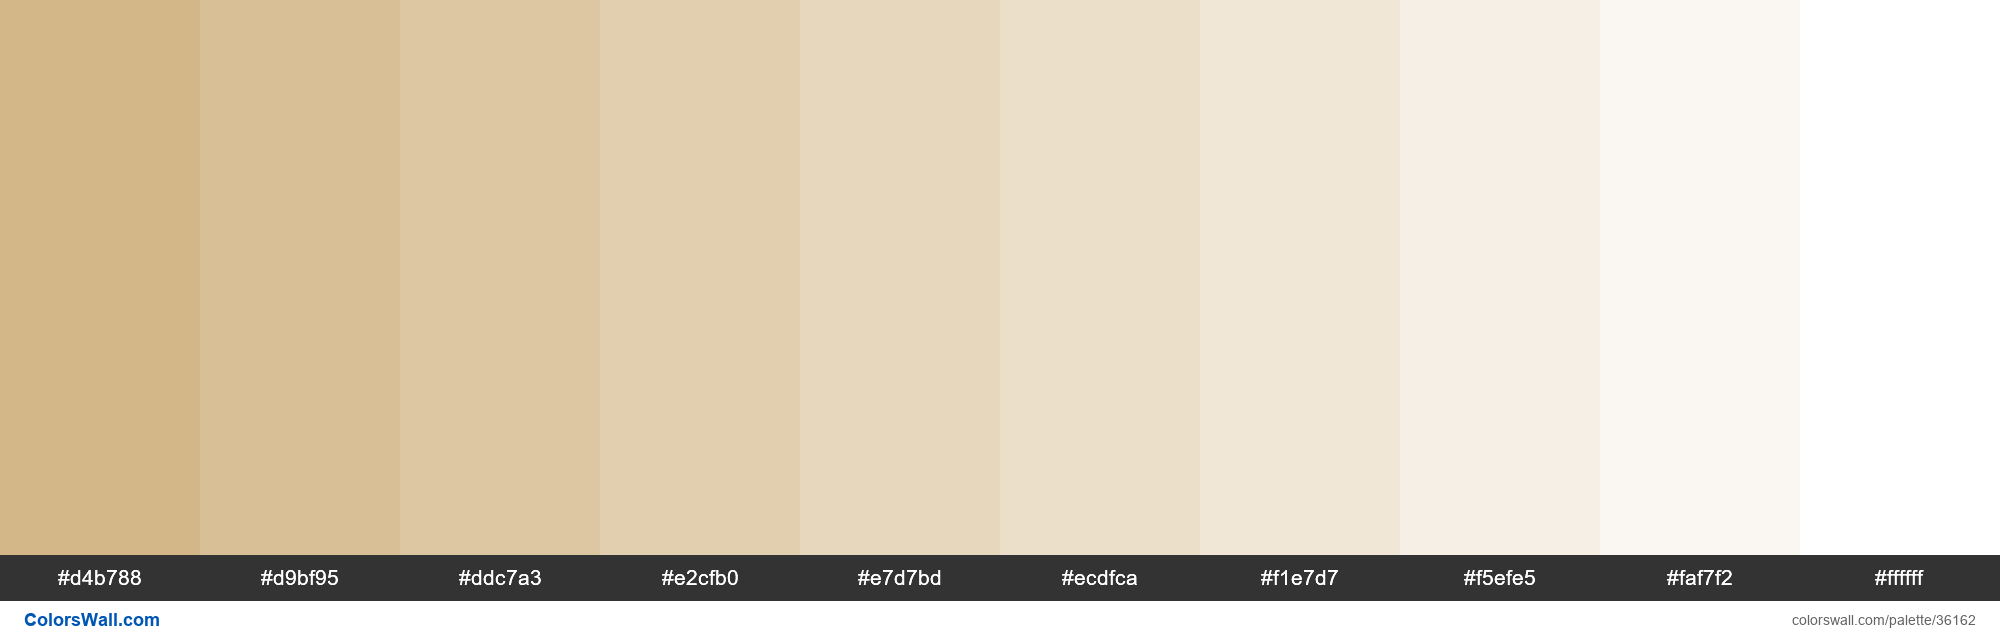 Tints XKCD Color fawn #cfaf7b hex - #36162